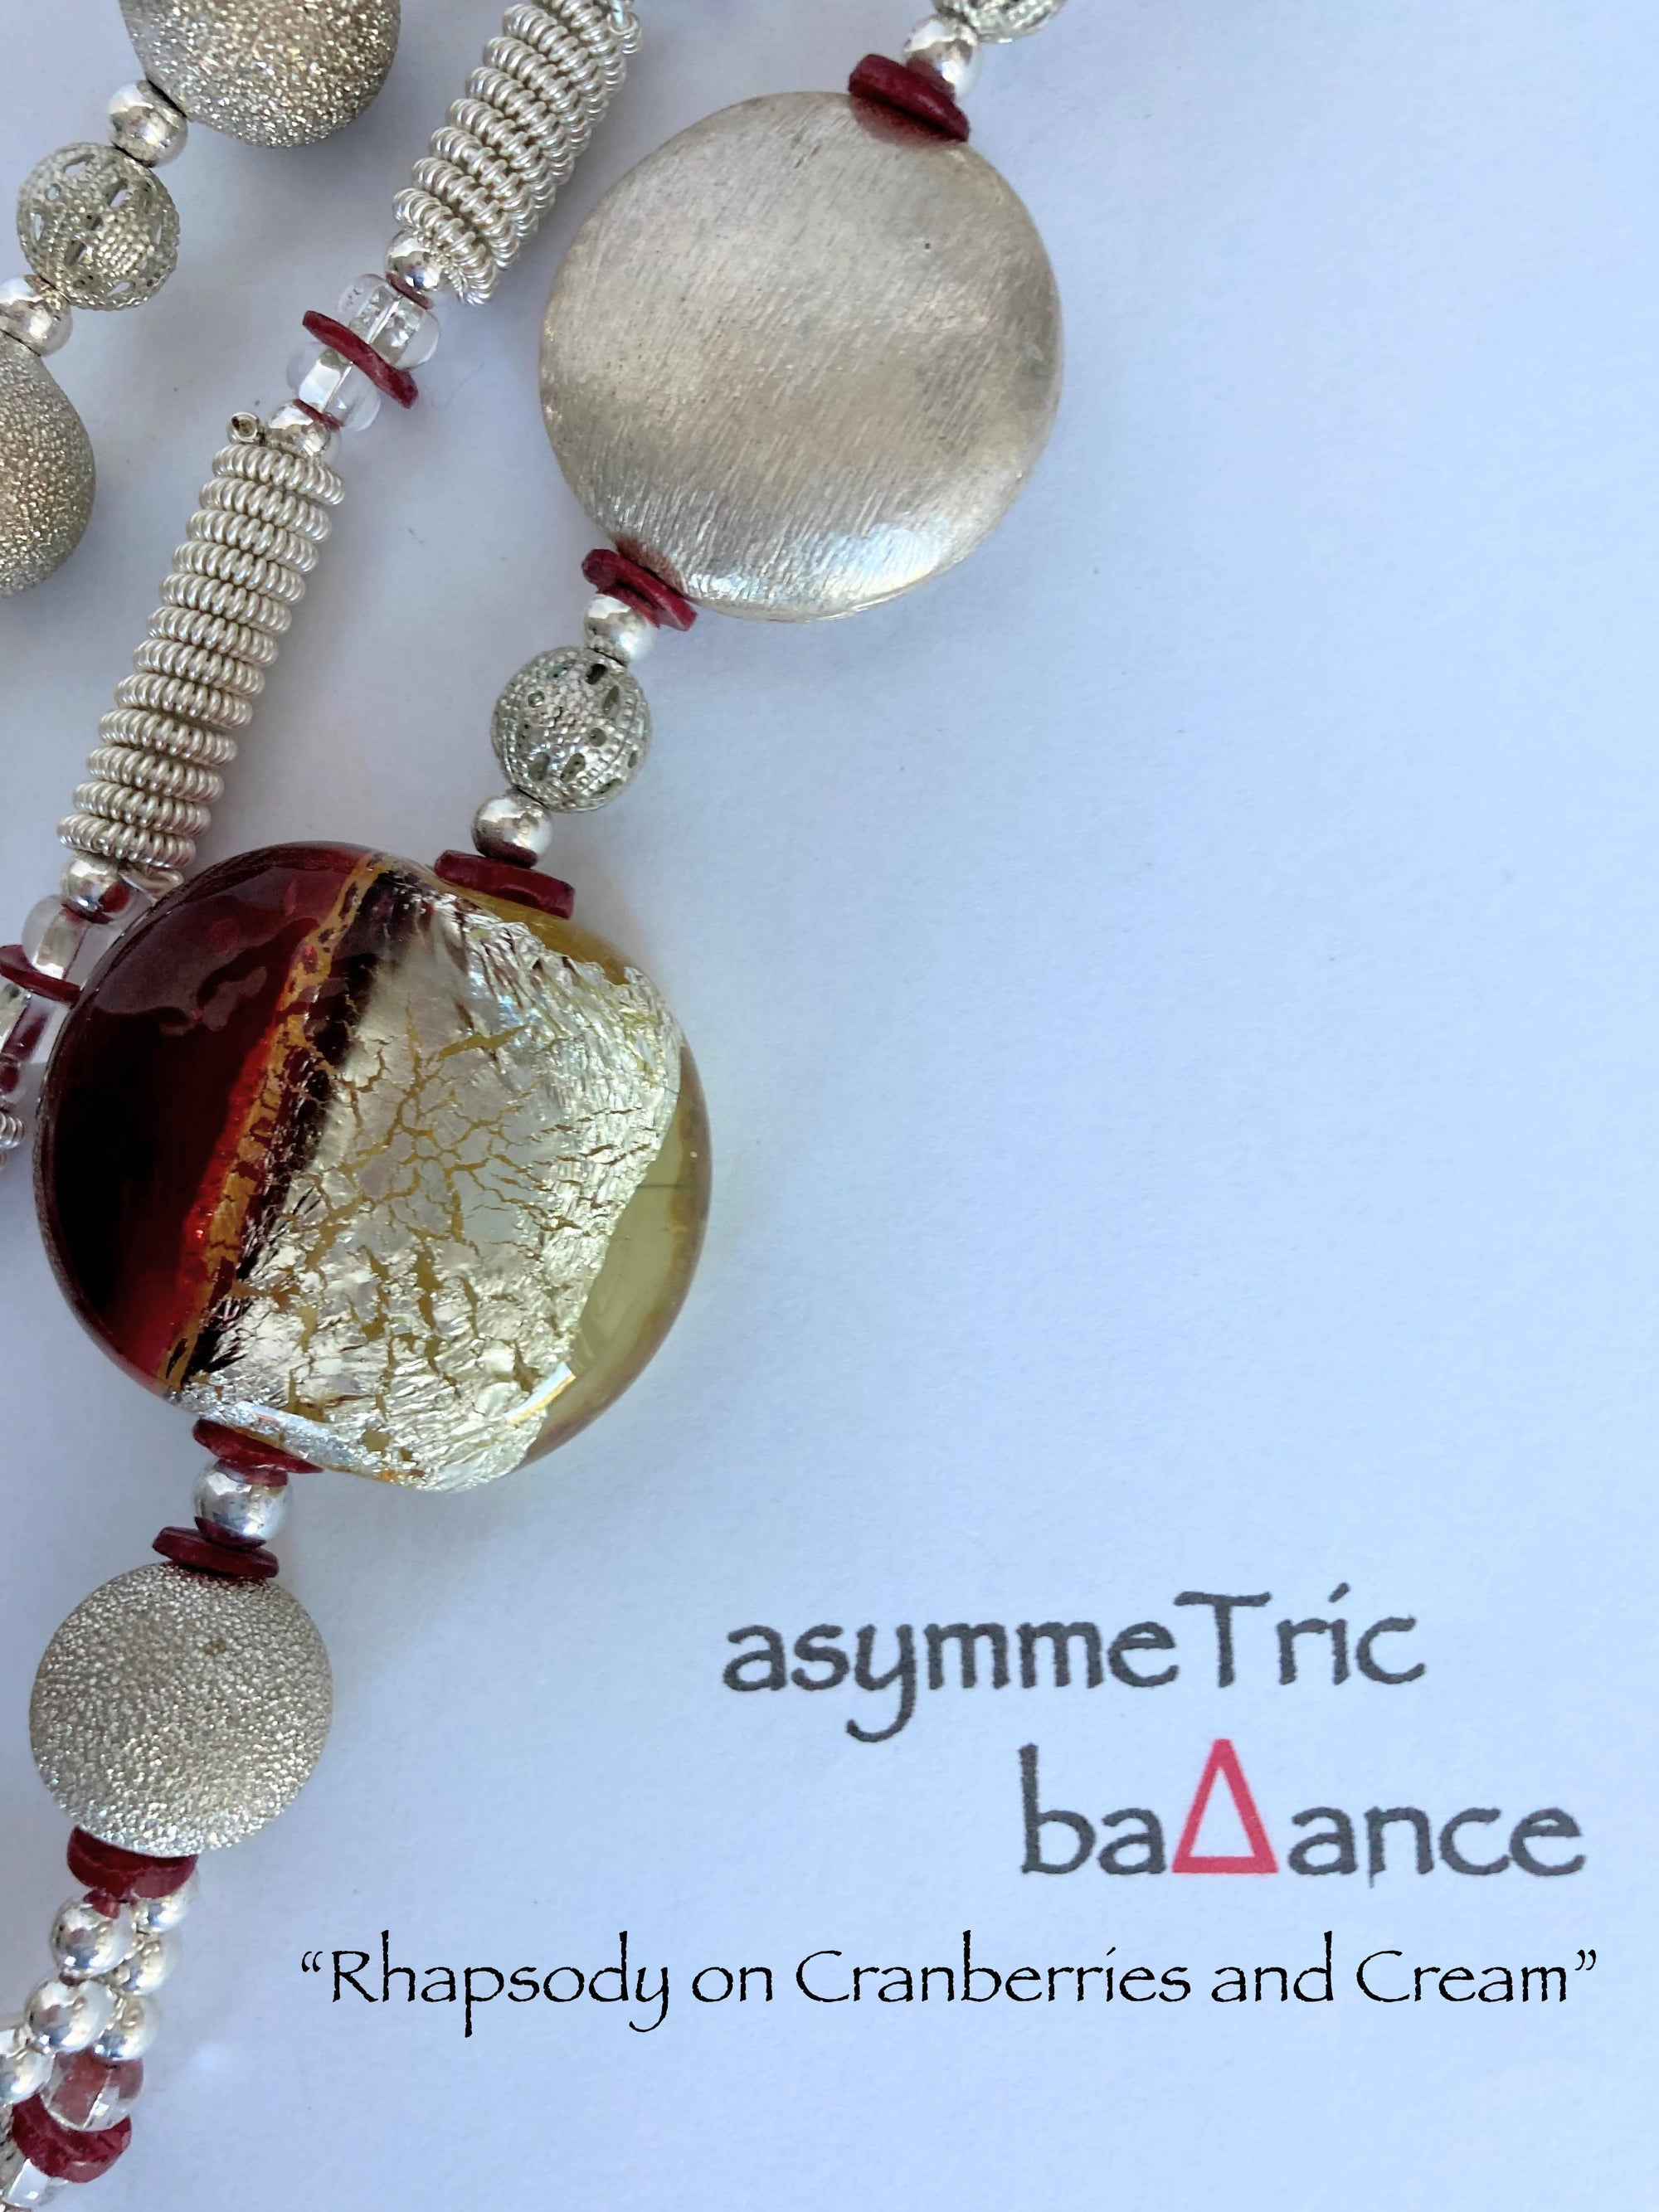 Rapsody on Cranberries and Cream: an symmetric statement necklace